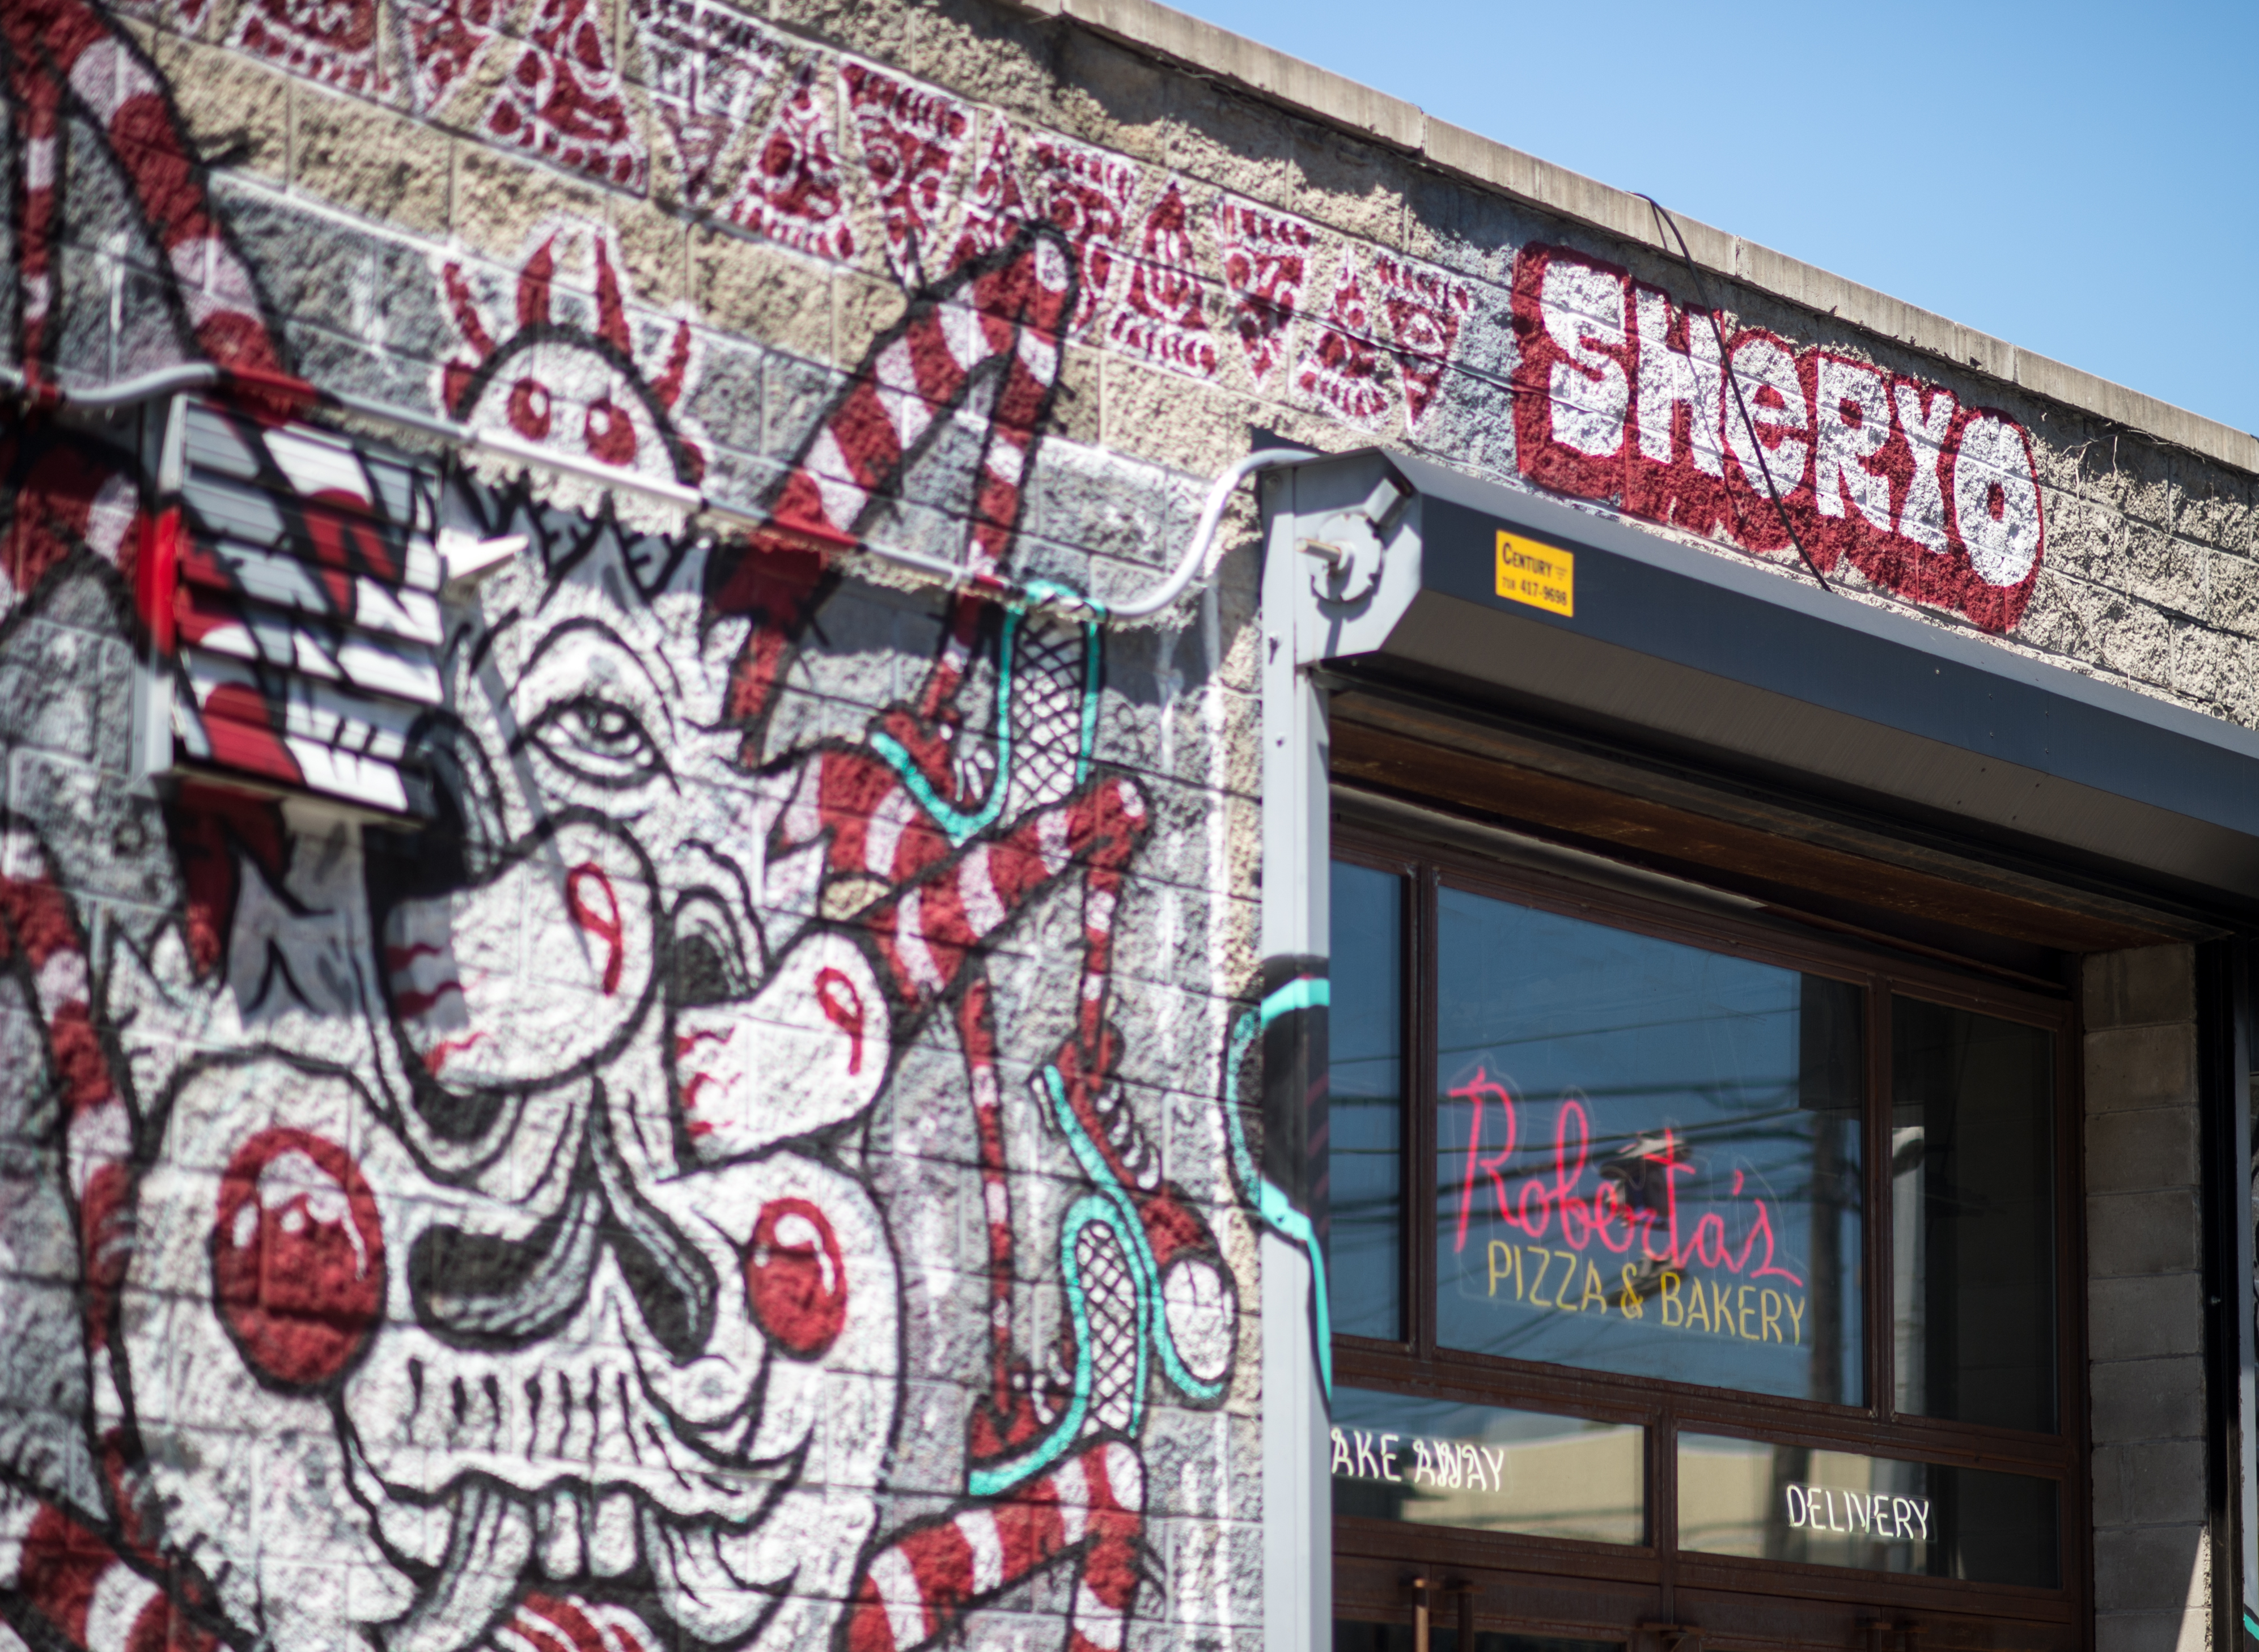 """A graffitied exterior of a building with a """"Roberta's"""" sign hanging in the window"""